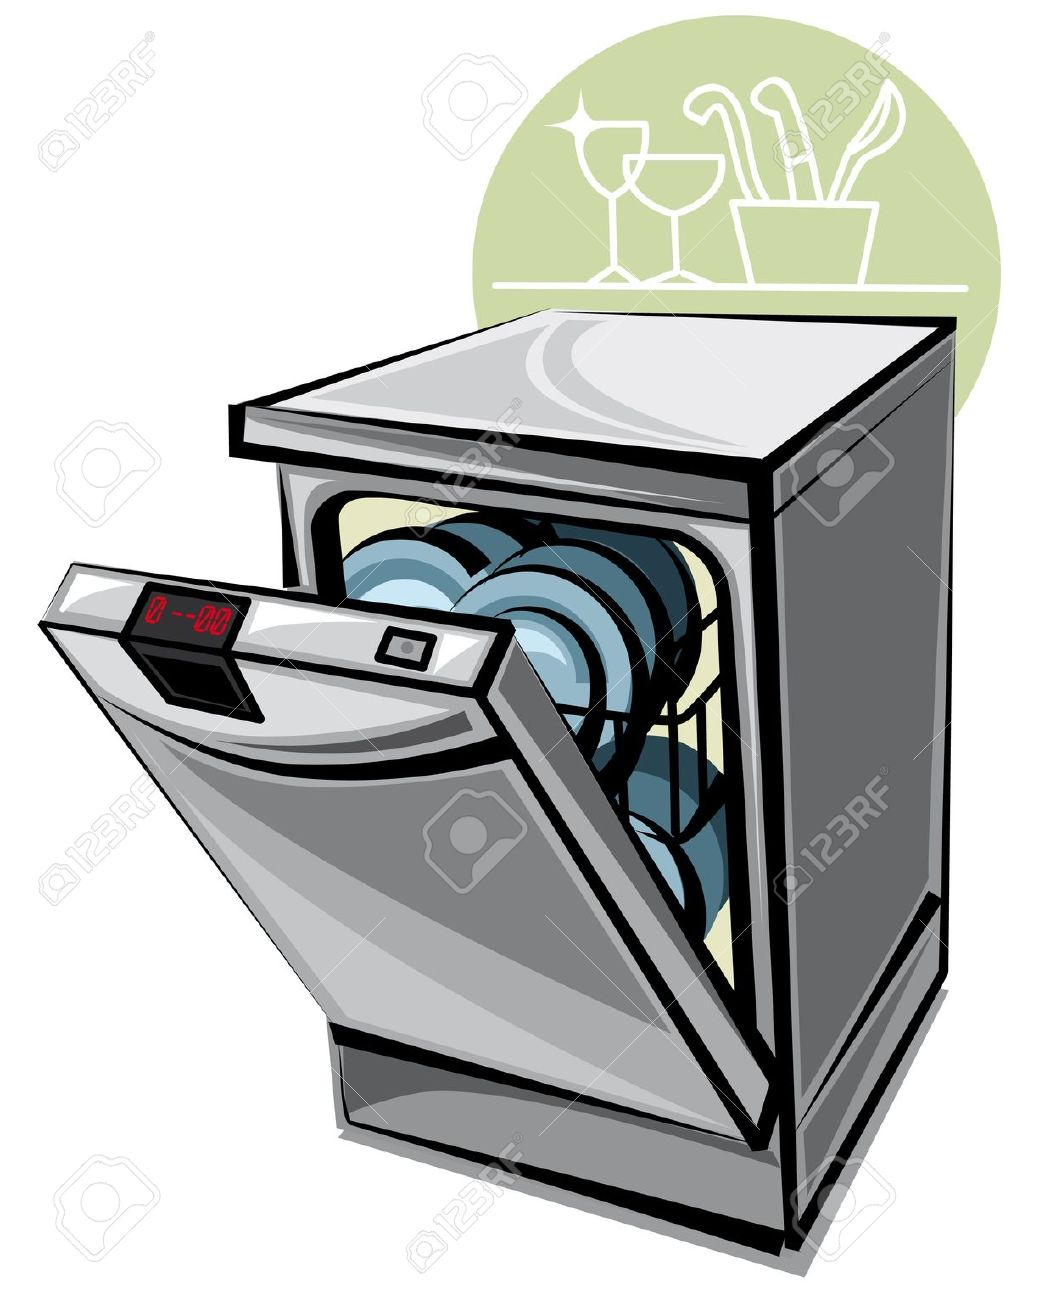 Unload dishwasher clipart.